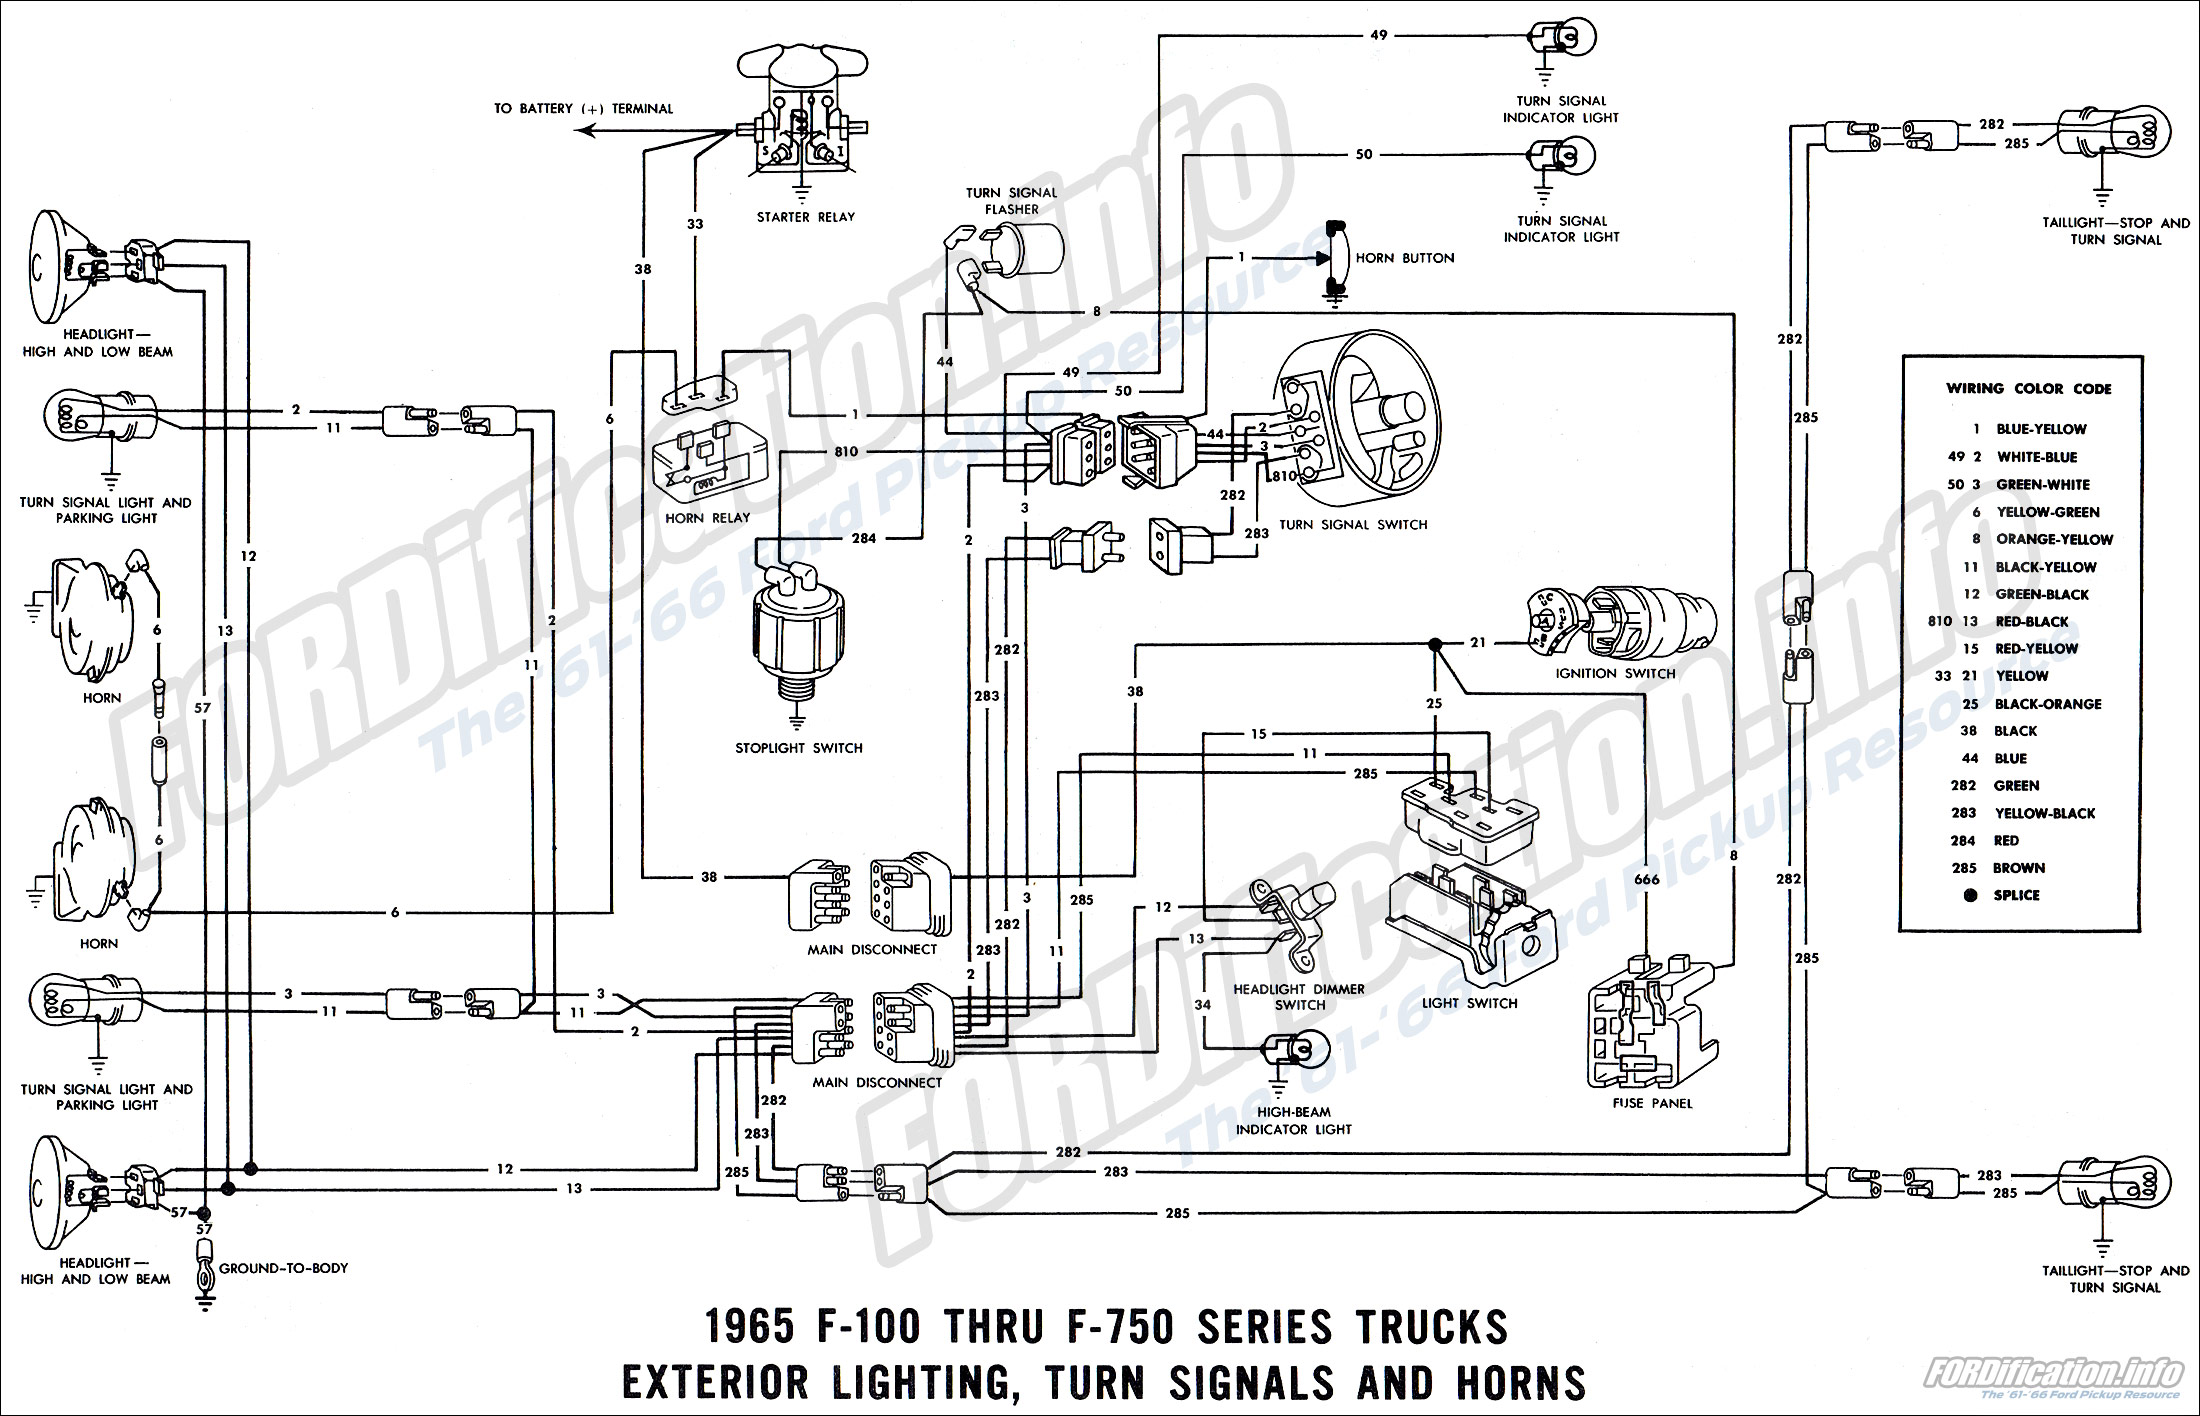 1965-lighting03 Free Wiring Schematic Maker on free electronics schematics, free hvac schematics, electrical schematics, free engine schematics, free power, free building schematics, free help, free layouts,